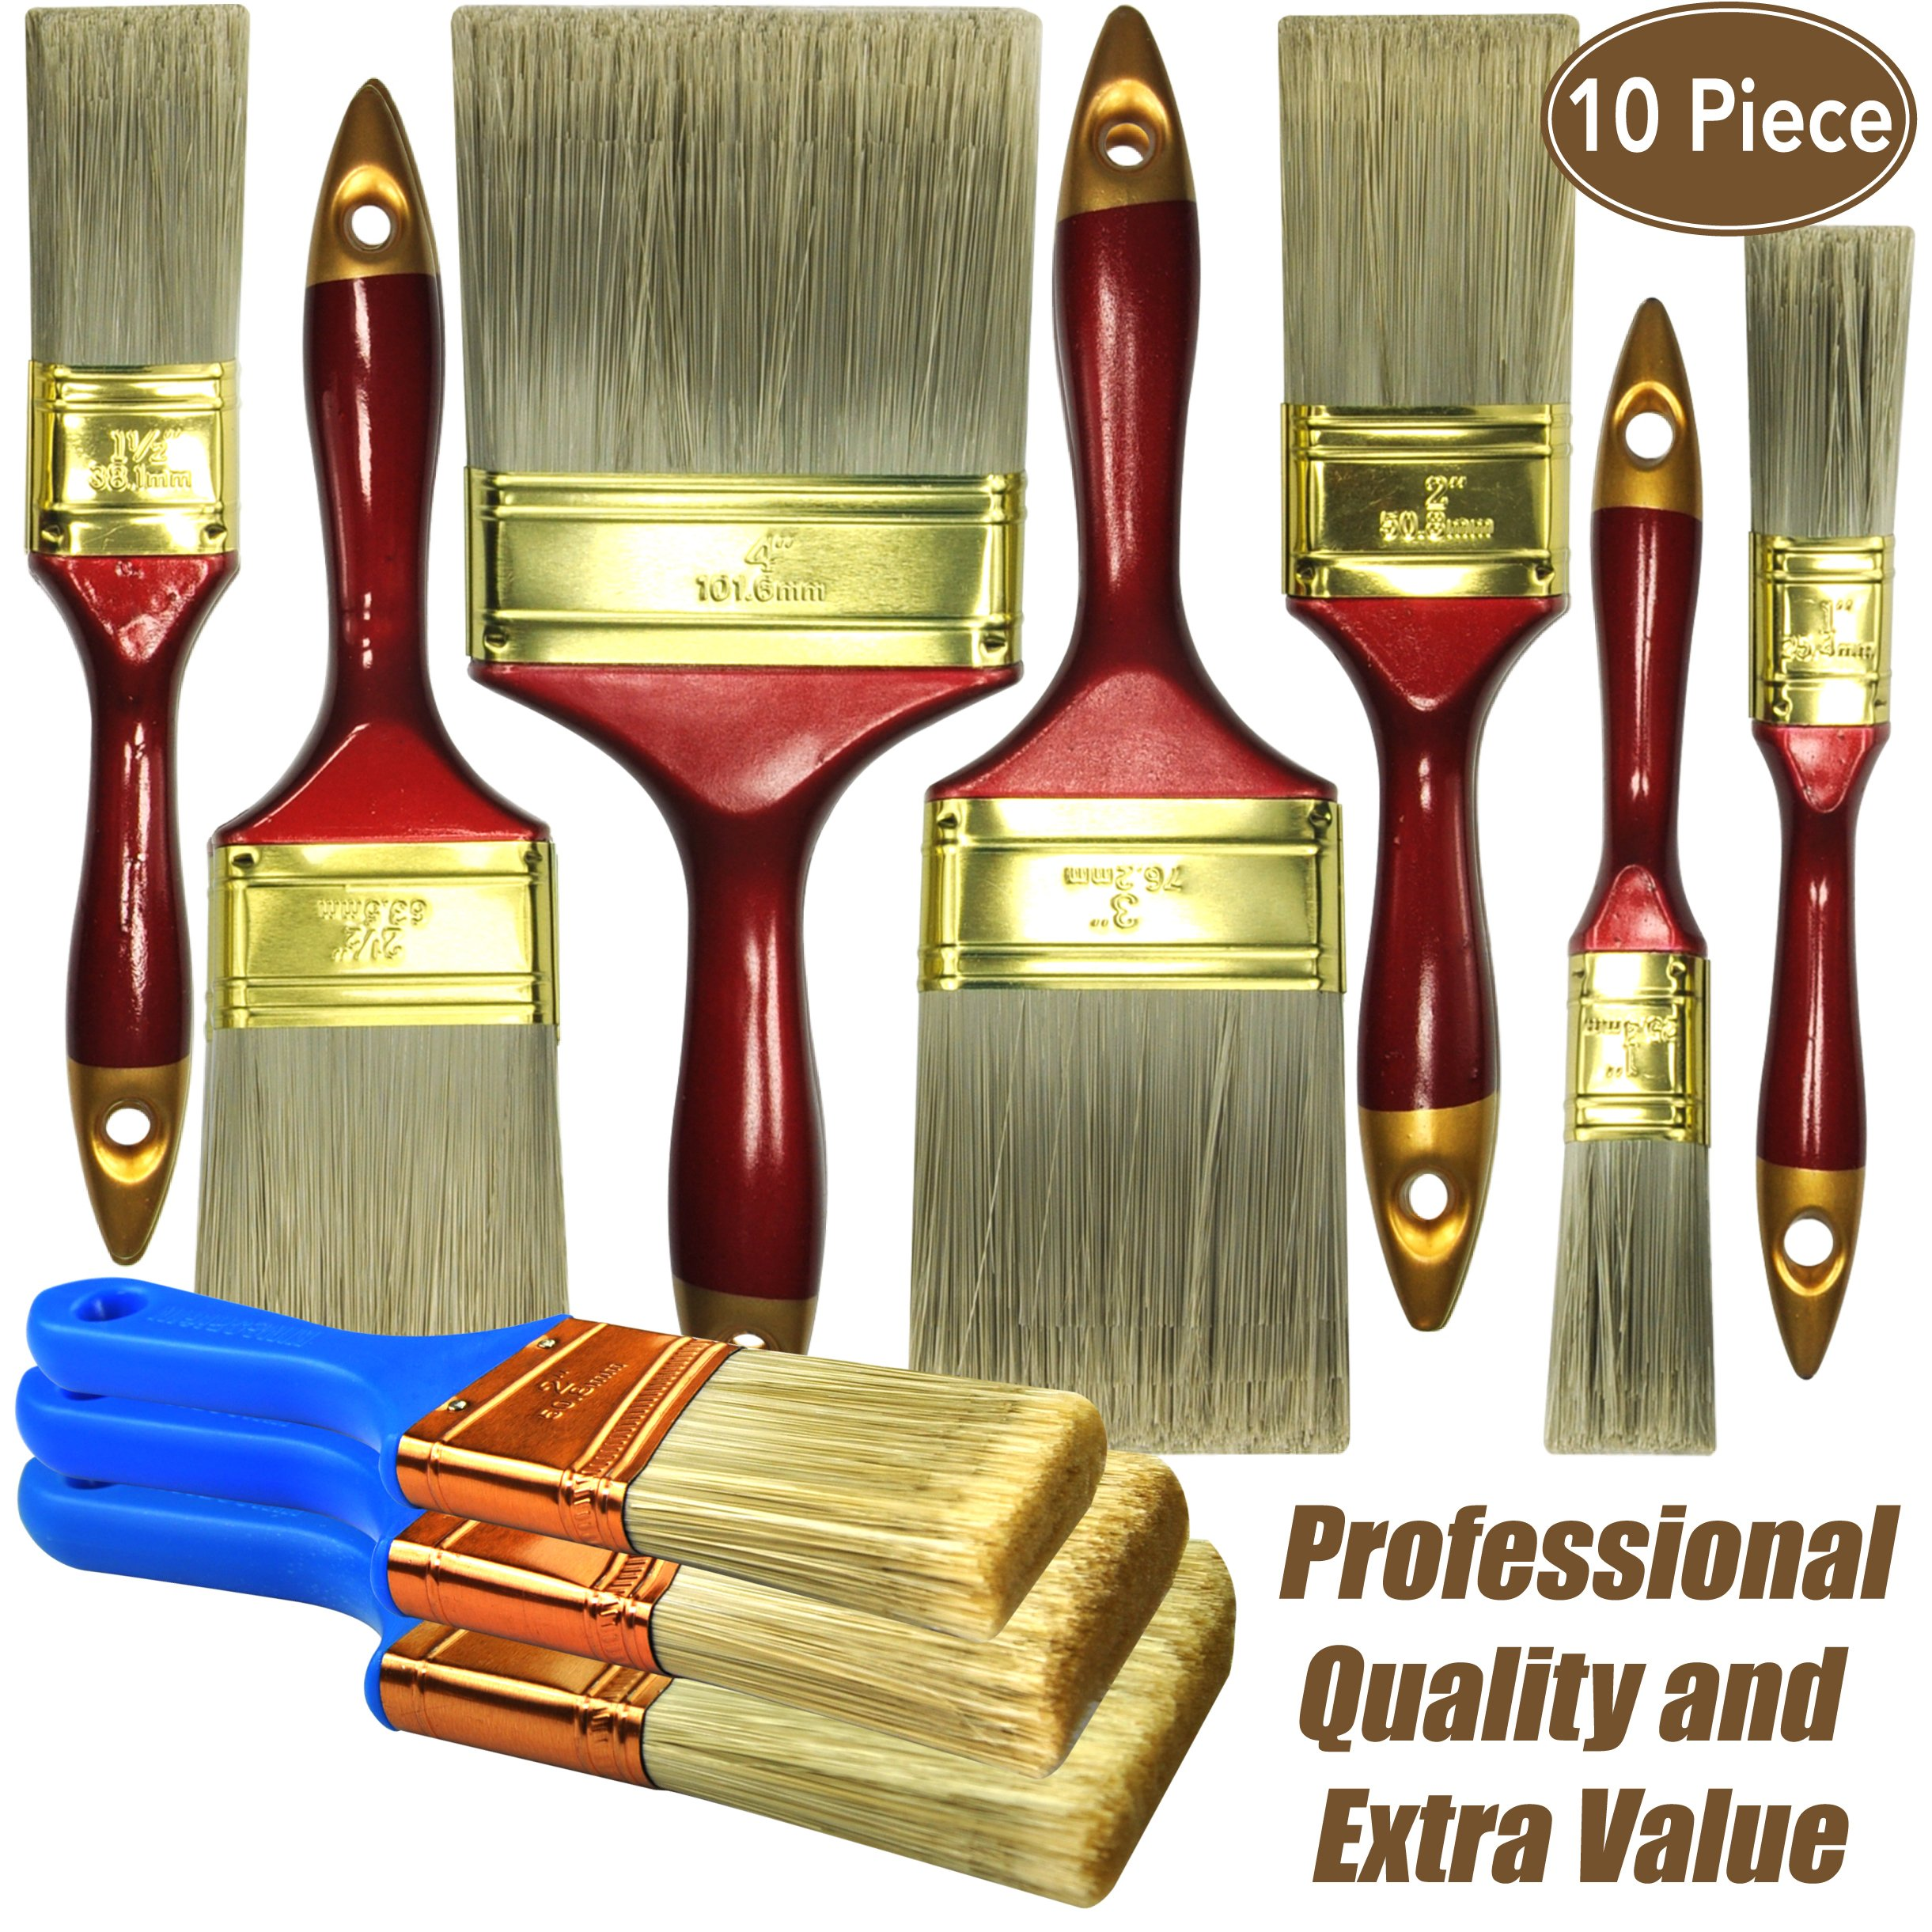 10 Piece Professional Painters Heavy Duty Paint Brush,Paint Brushes,Paint Brushes Set,Paint Brushes,Painters Tools,Painters Brush,Painters Paint Brush